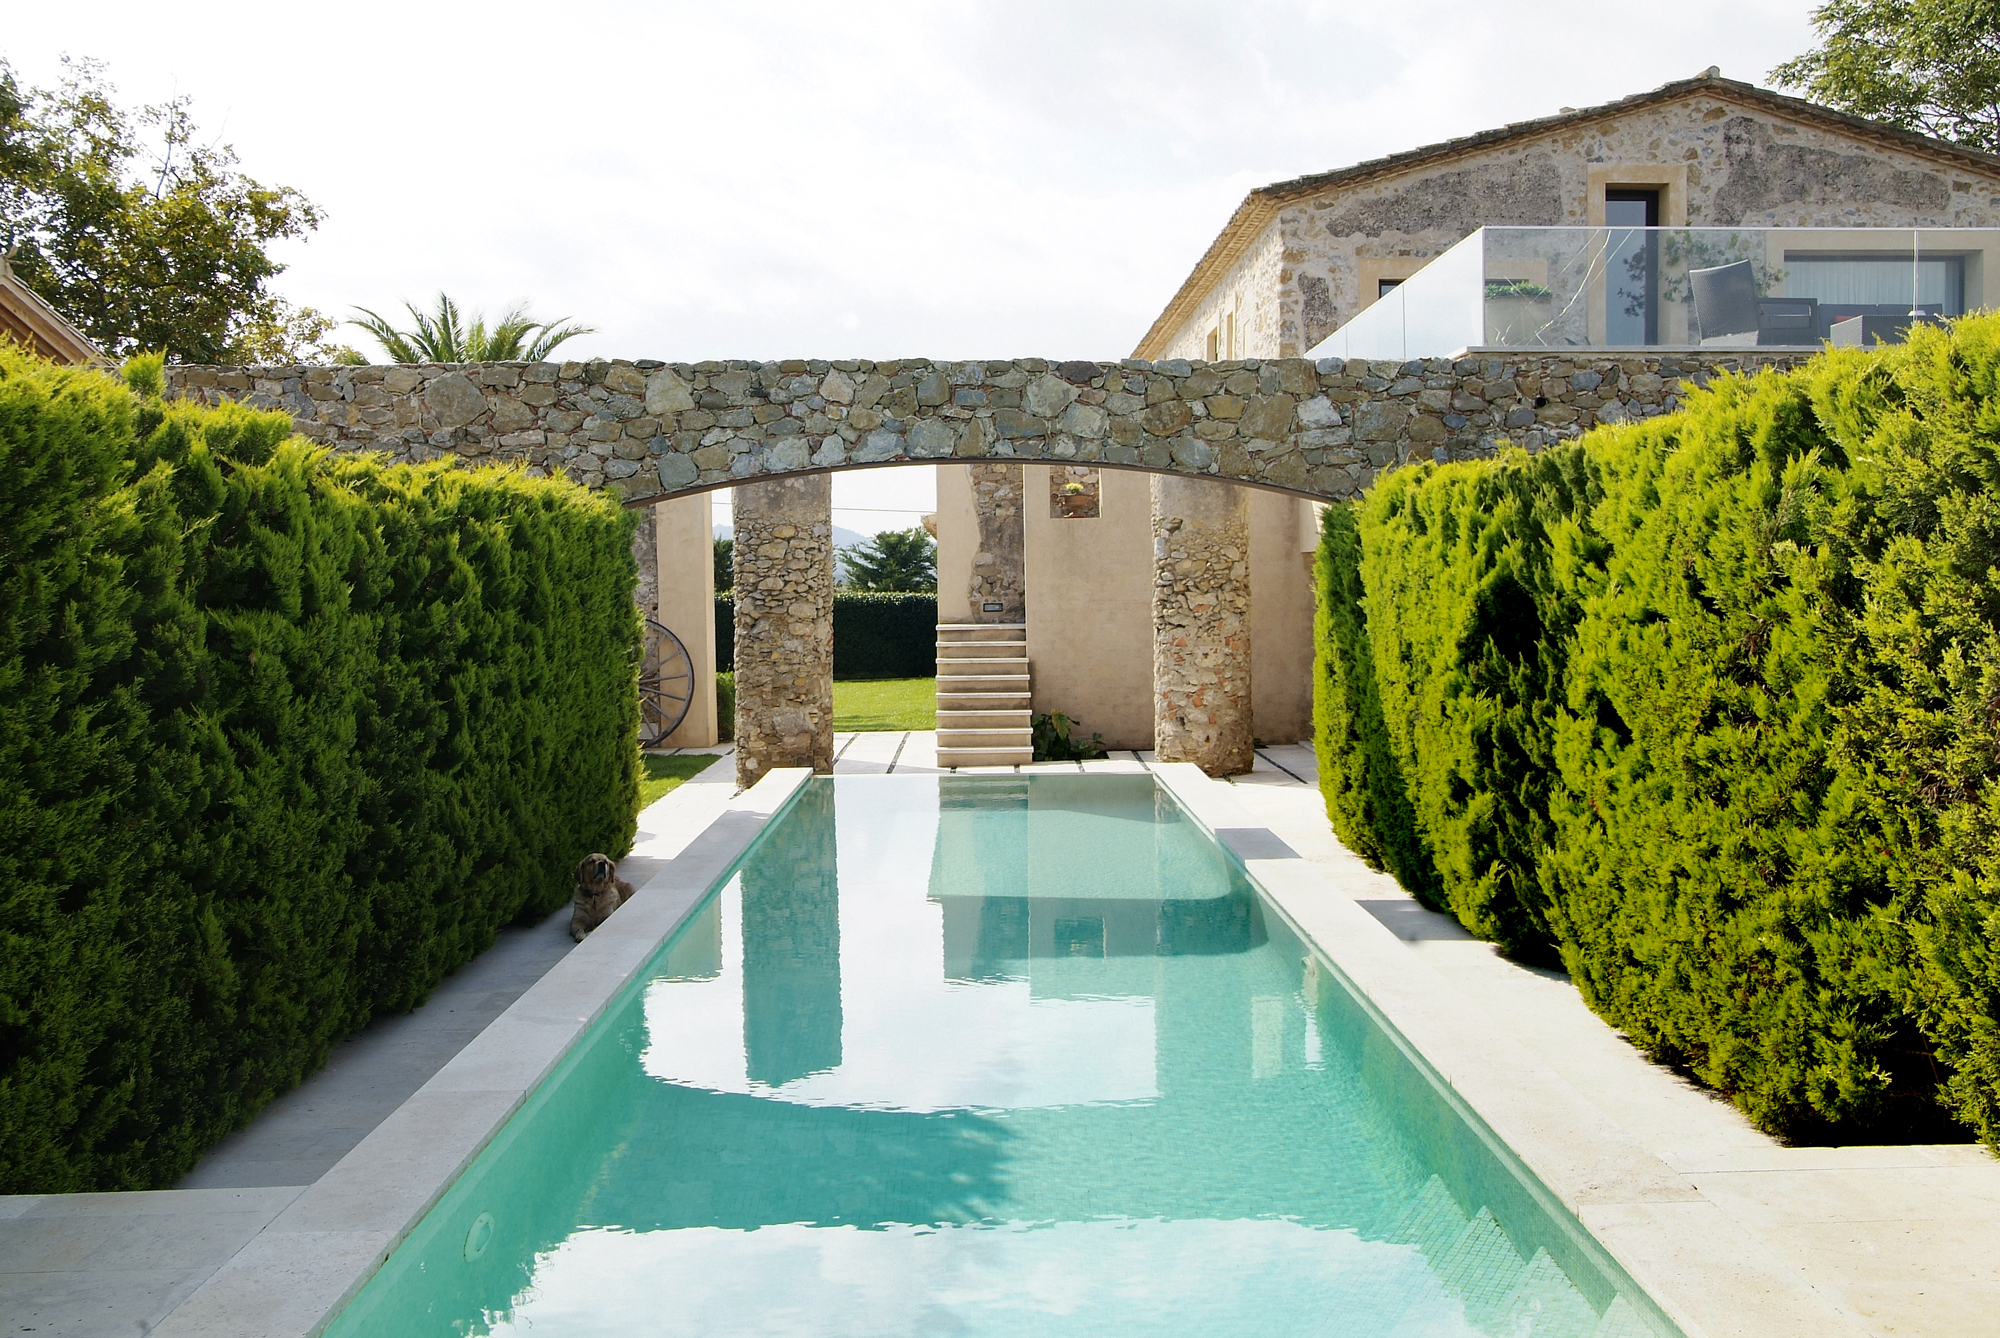 Single Family Home for Sale at Extraordinary and exquisite country farm house Other Cities Baix Emporda, Barcelona, 17001 Spain